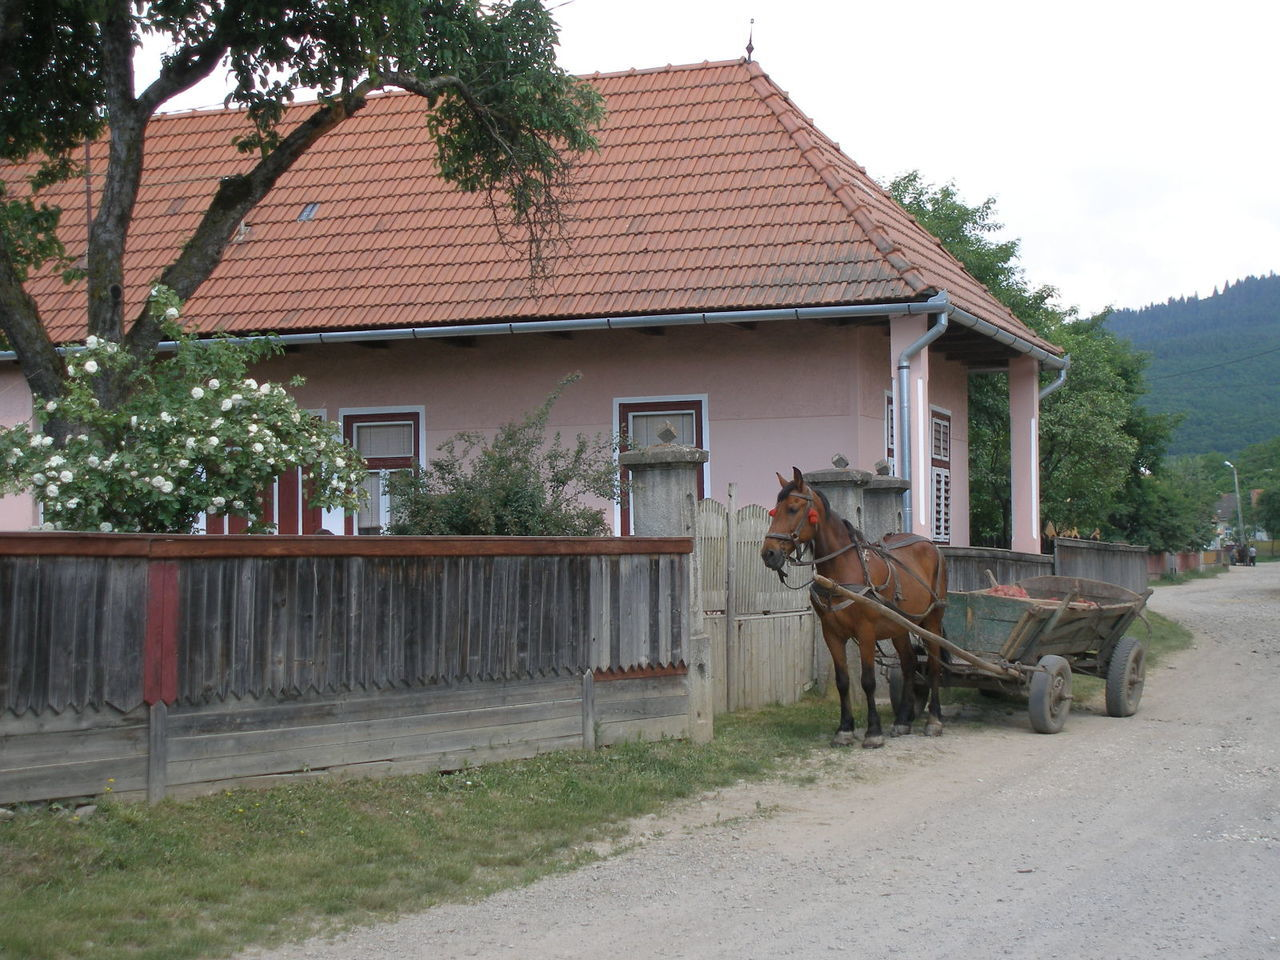 horse, horse cart, built structure, horsedrawn, architecture, domestic animals, building exterior, tree, animal themes, mammal, day, transportation, livestock, outdoors, no people, sky, nature